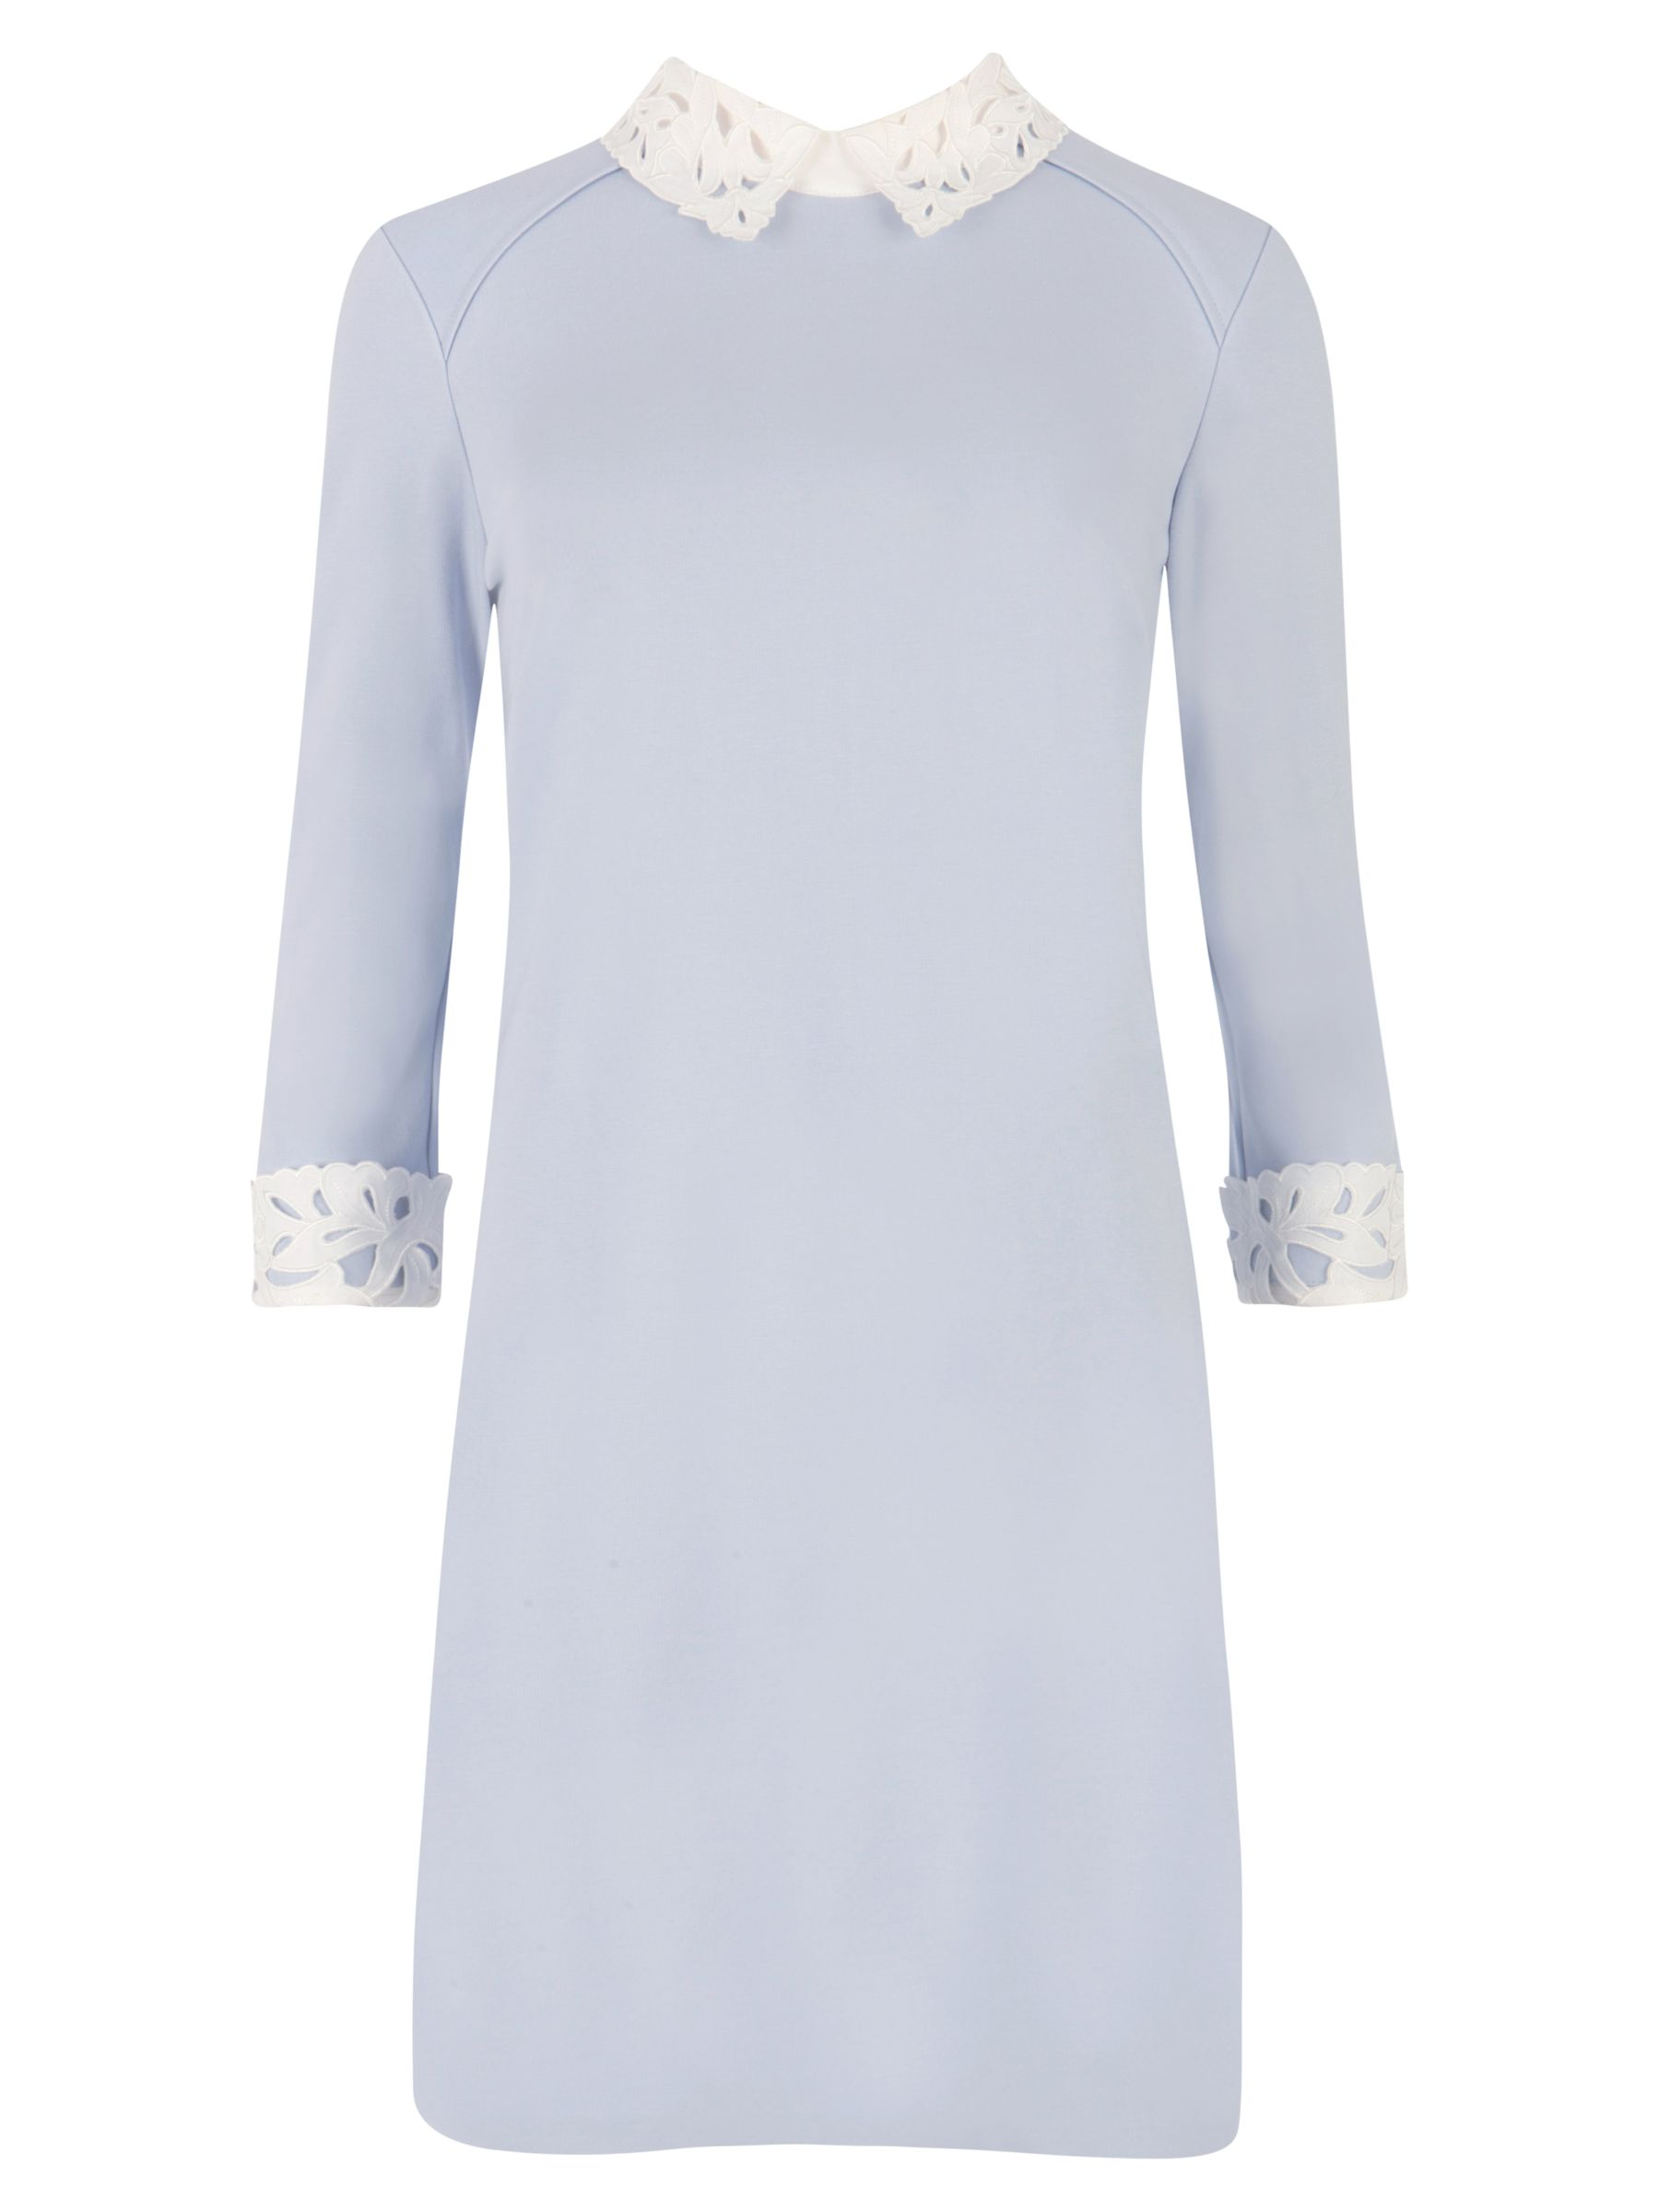 ted baker lace collar tunic dress powder blue, ted, baker, lace, collar, tunic, dress, powder, blue, ted baker, 1|2|3|4|5|0, edition magazine, ss15 trend pastels, women, womens dresses, fashion magazine, womenswear, men, brands l-z, 1873503